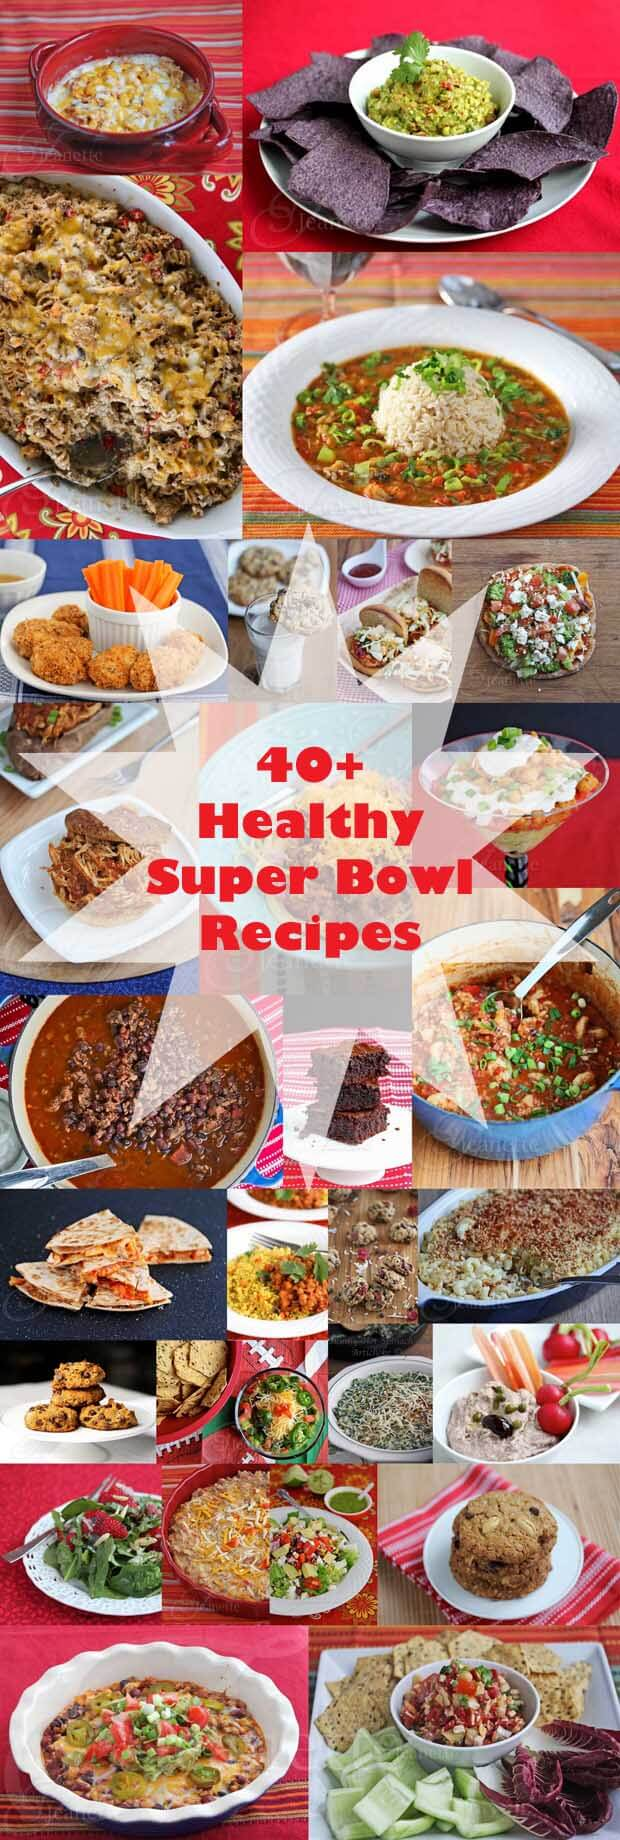 40+ Healthy Super Bowl Recipes